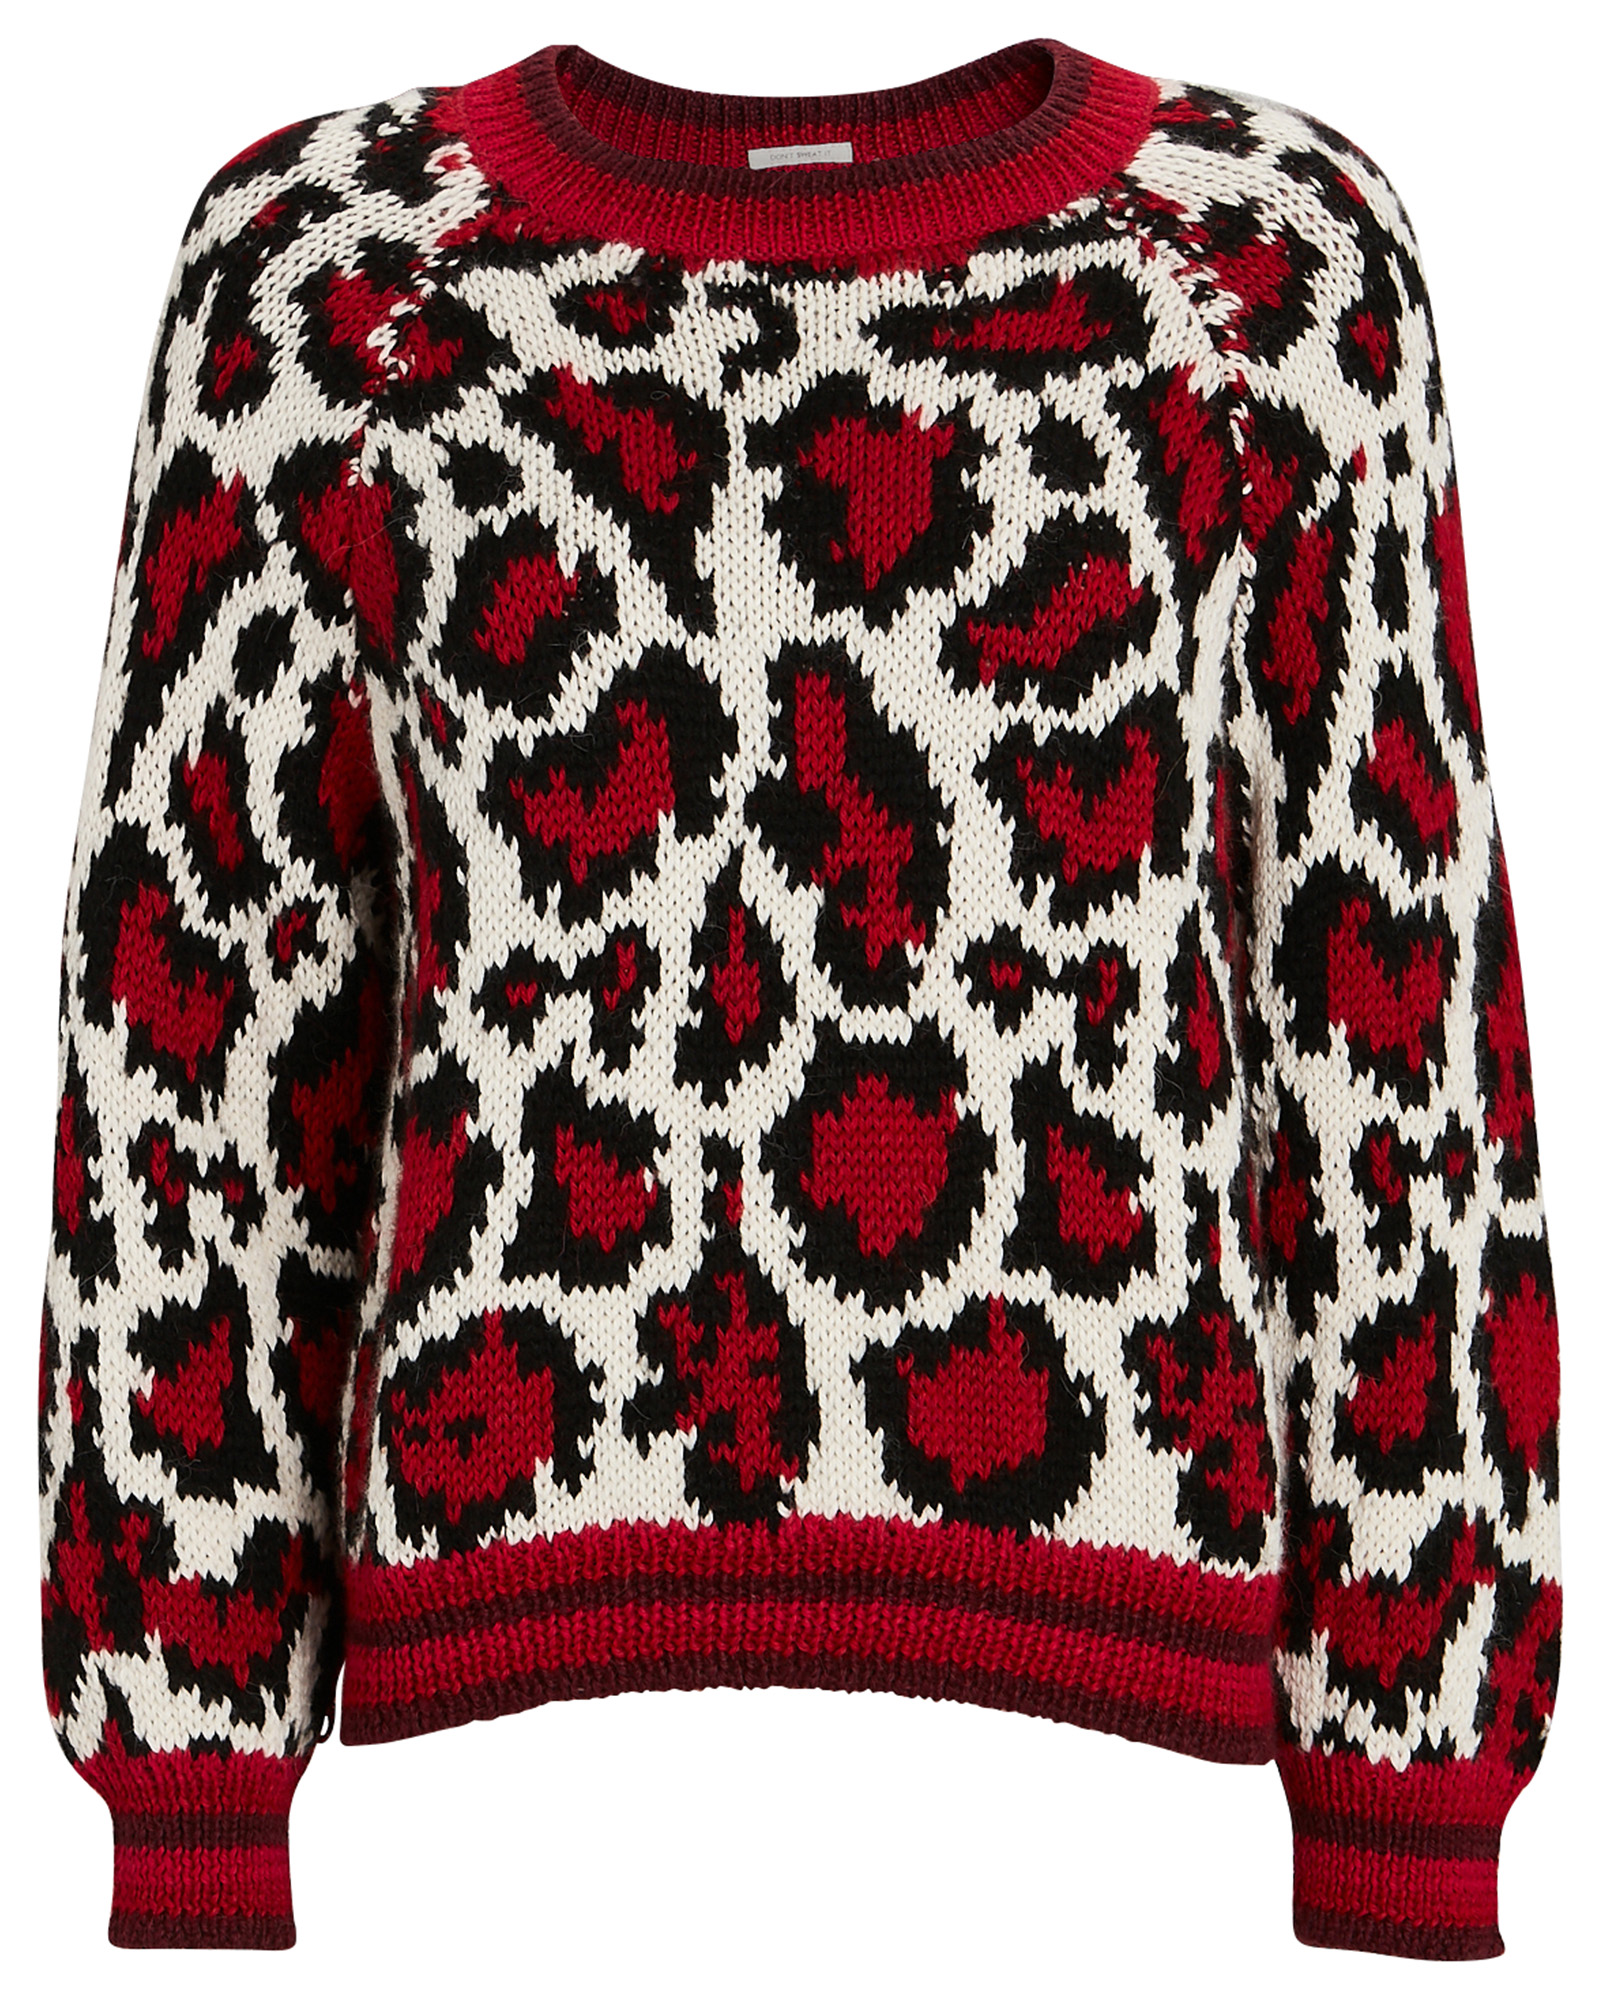 Mother MOTHER THE BOAT SQUARE LEOPARD SWEATER